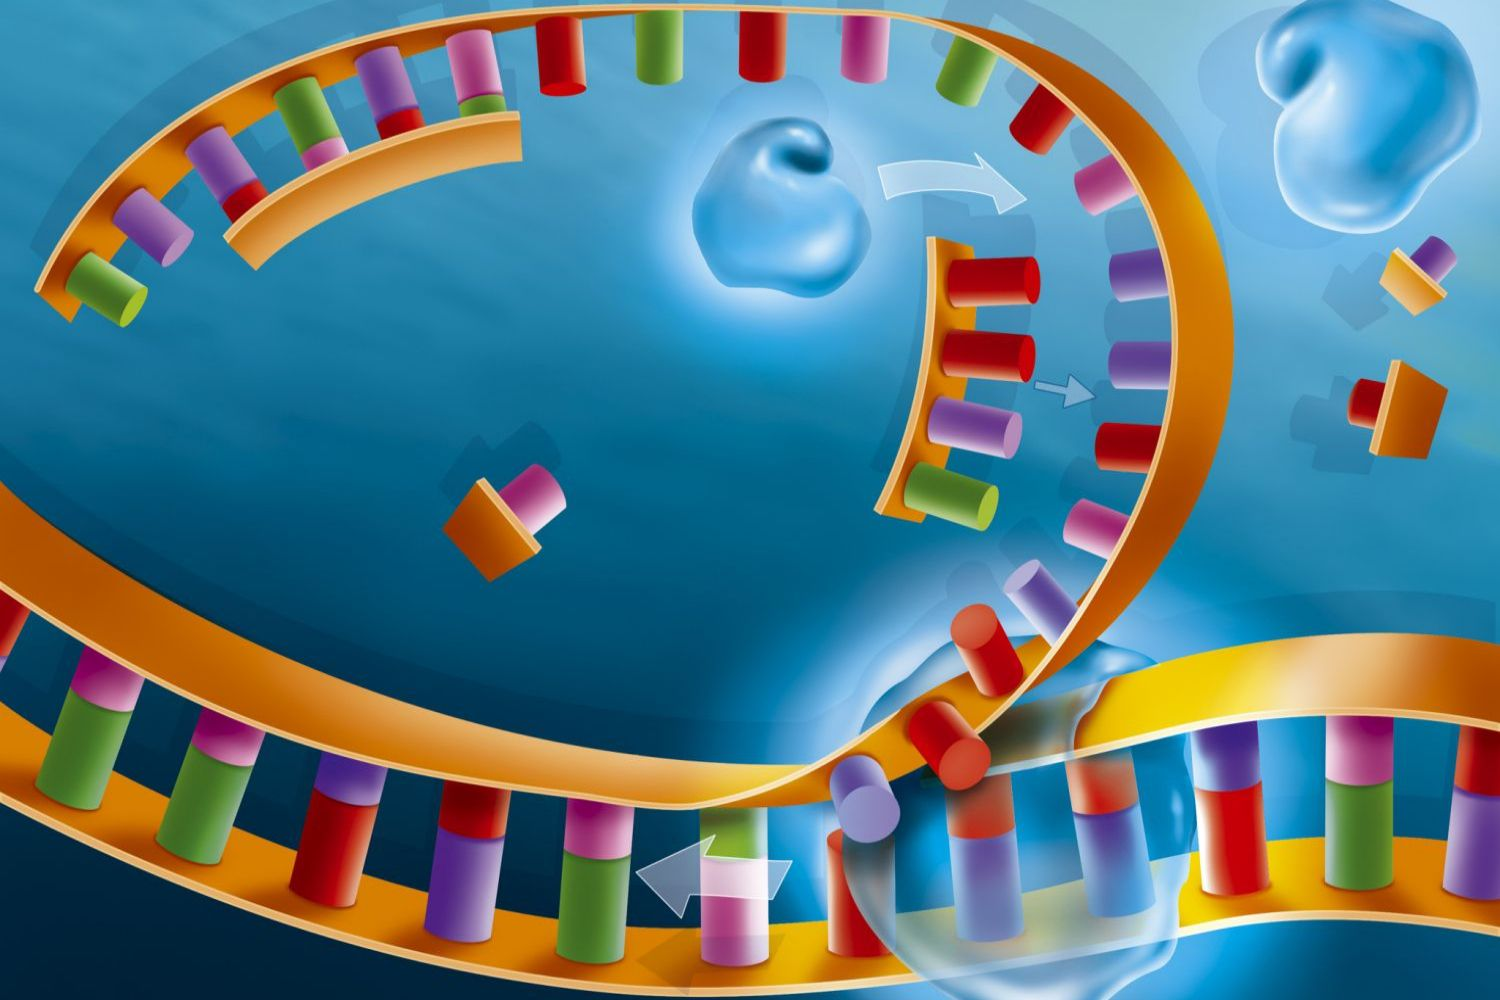 DNA polymerases (blue) attach themselves to the DNA and elongate the new strands by adding nucleotide bases.